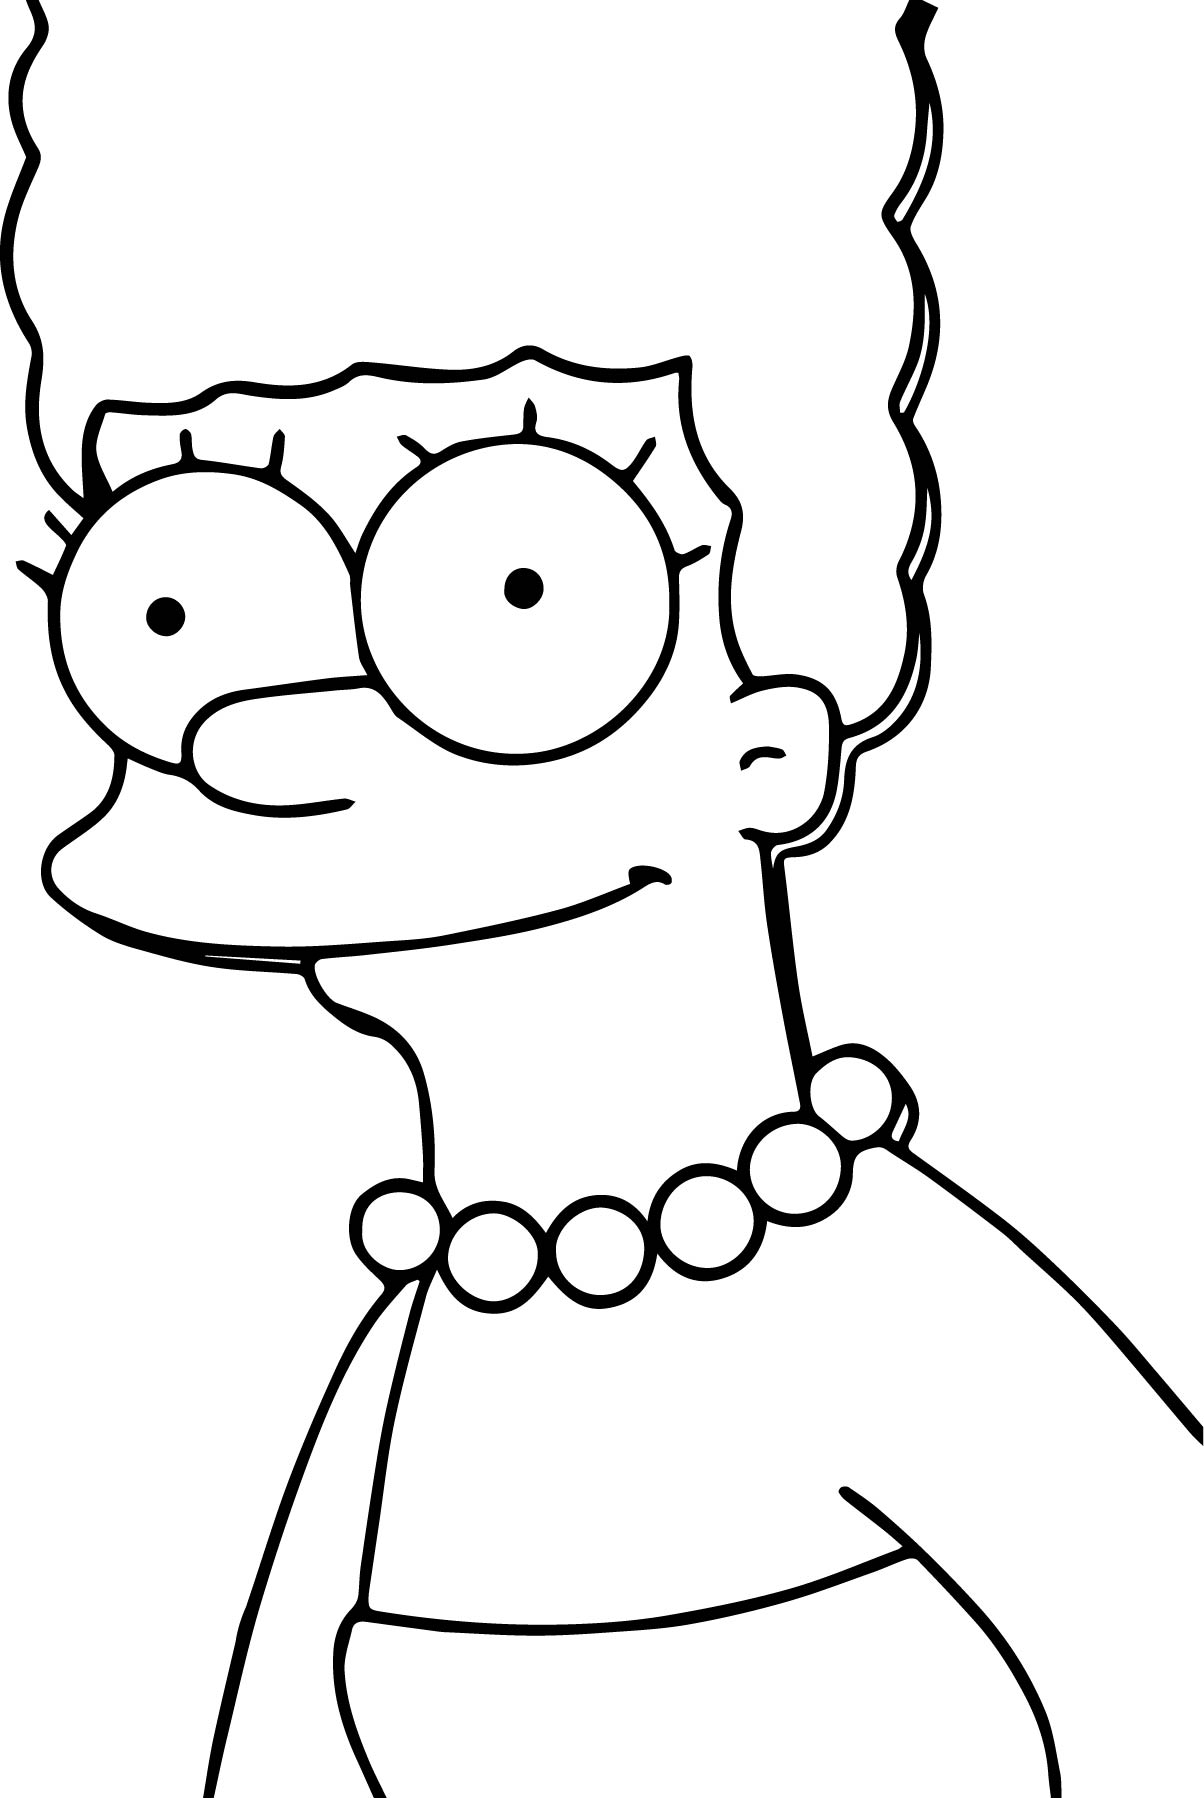 Marge The Simpsons Coloring Page | Wecoloringpage.com